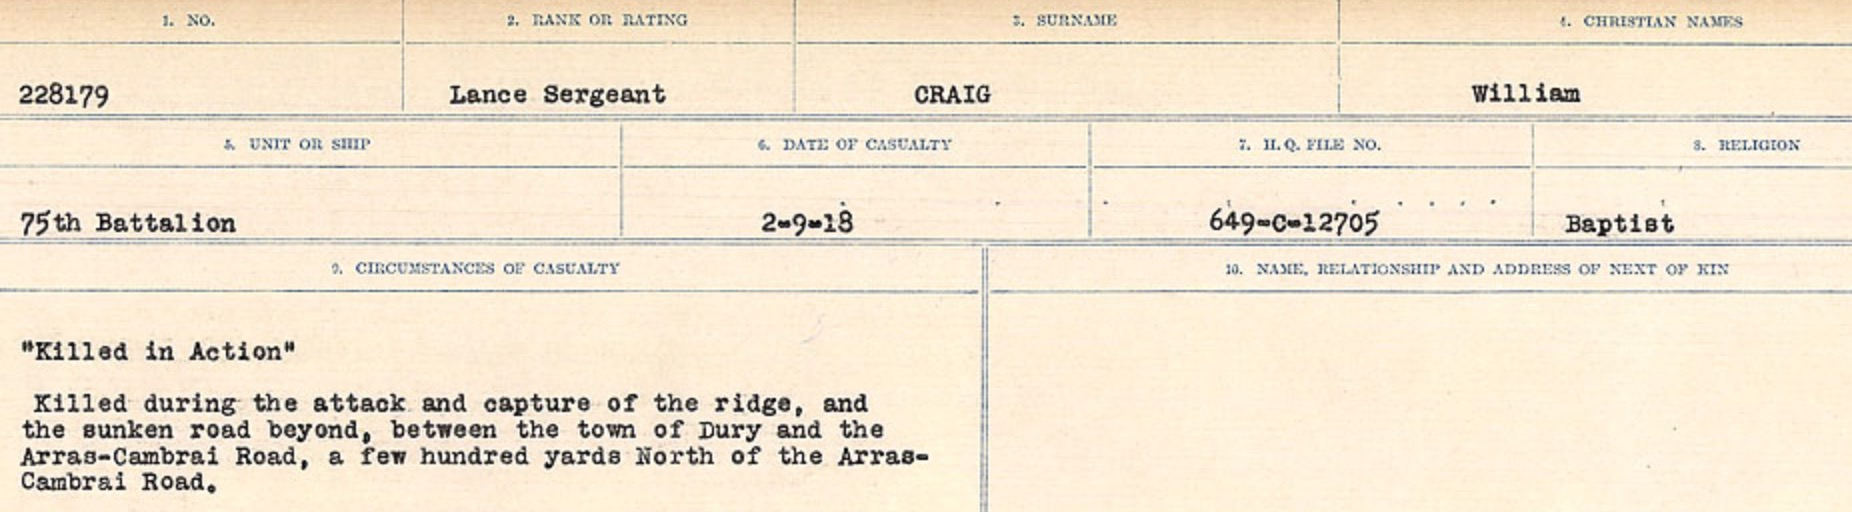 Circumstances of Death Registers– Source: Library and Archives Canada. CIRCUMSTANCES OF DEATH REGISTERS, FIRST WORLD WAR Surnames: CRABB TO CROSSLAND Microform Sequence 24; Volume Number 31829_B016733. Reference RG150, 1992-93/314, 168. Page 133 of 788.